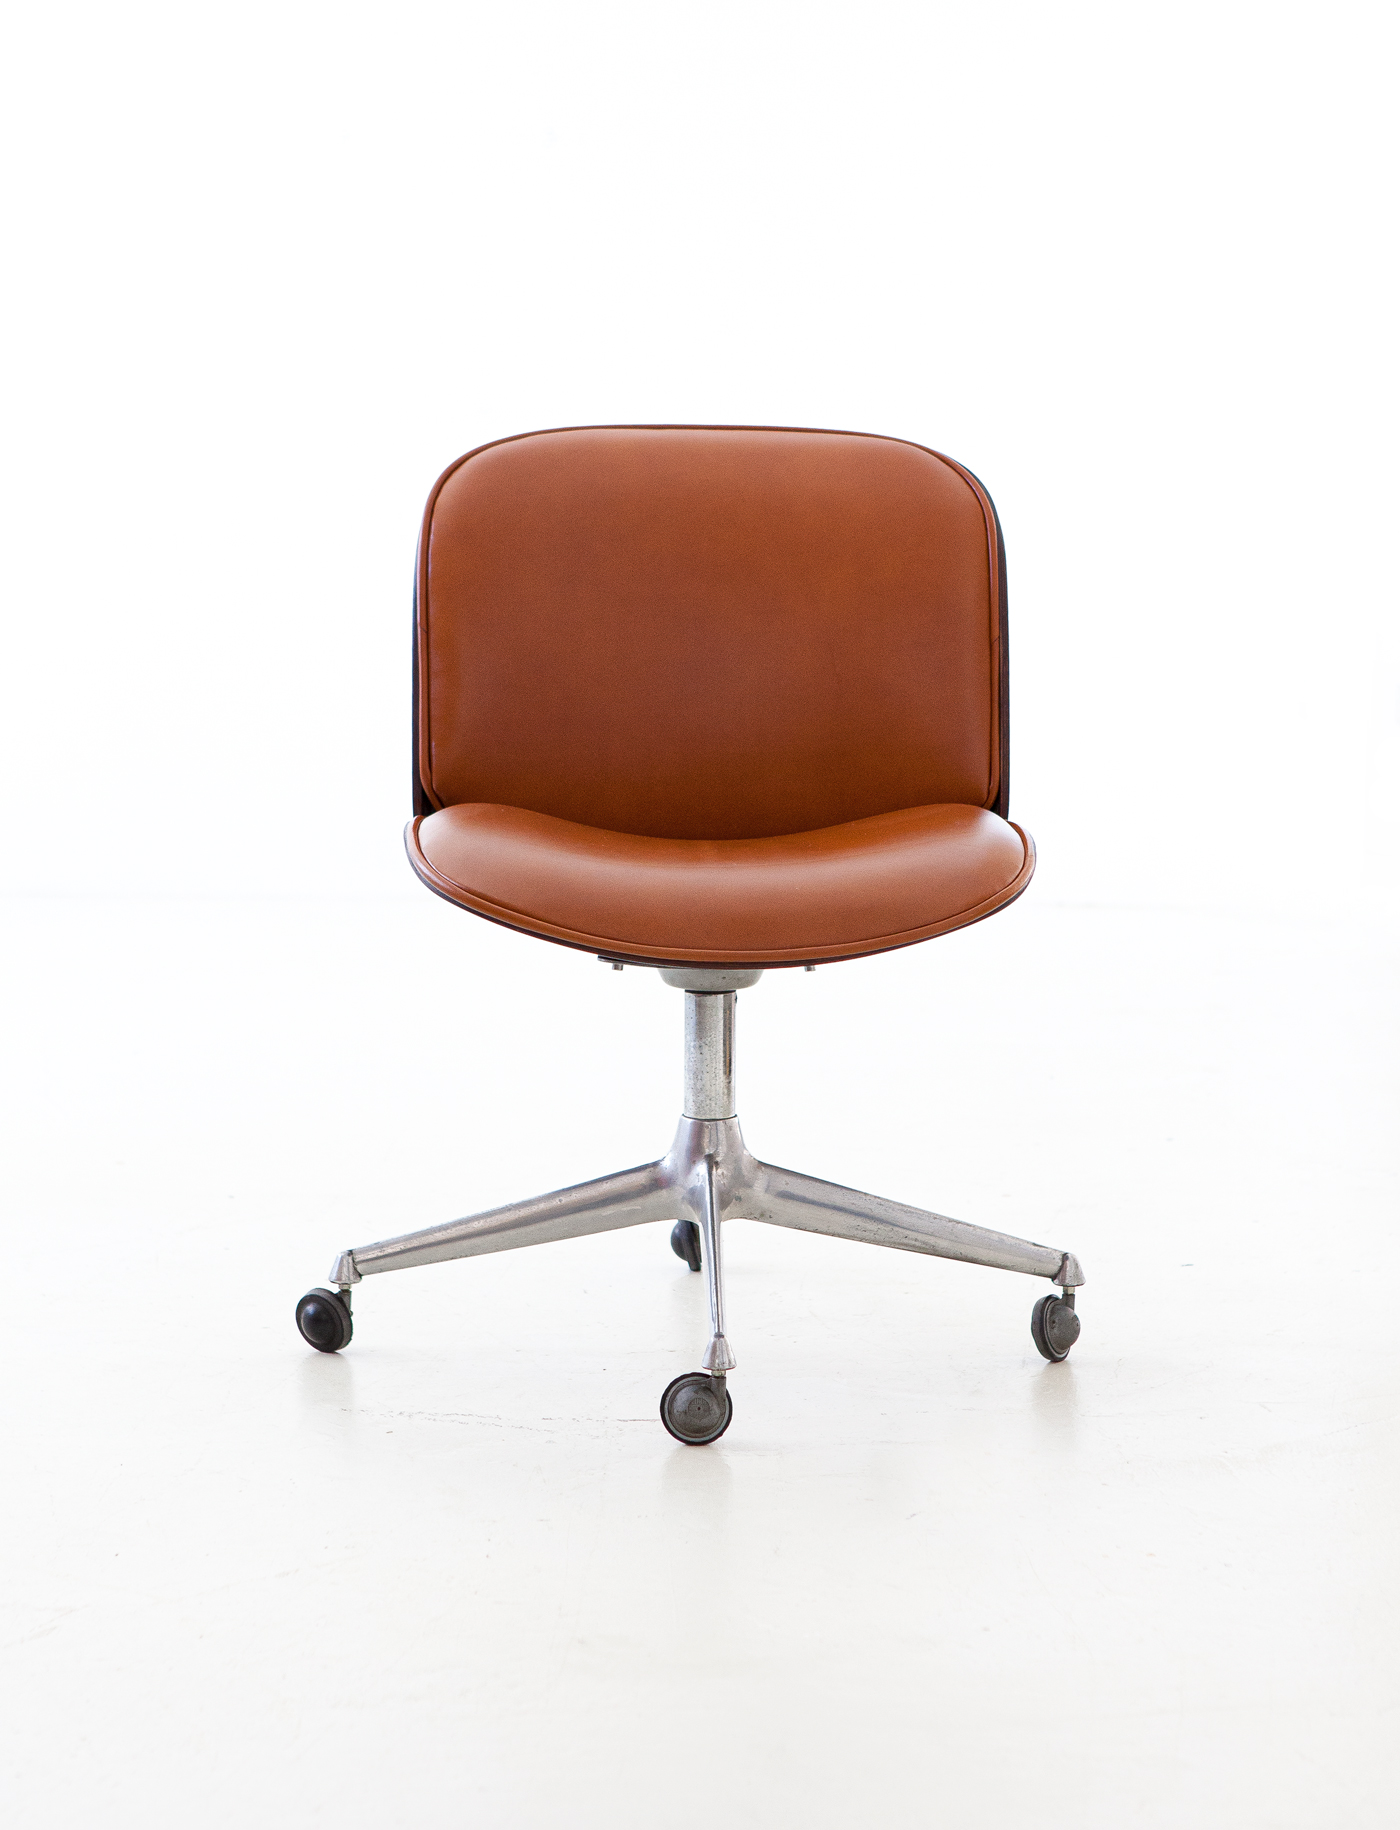 1950s-rosewood-and-cognac-leather-swivel-chair-by-ico-parisi-for-mim-6-se328a